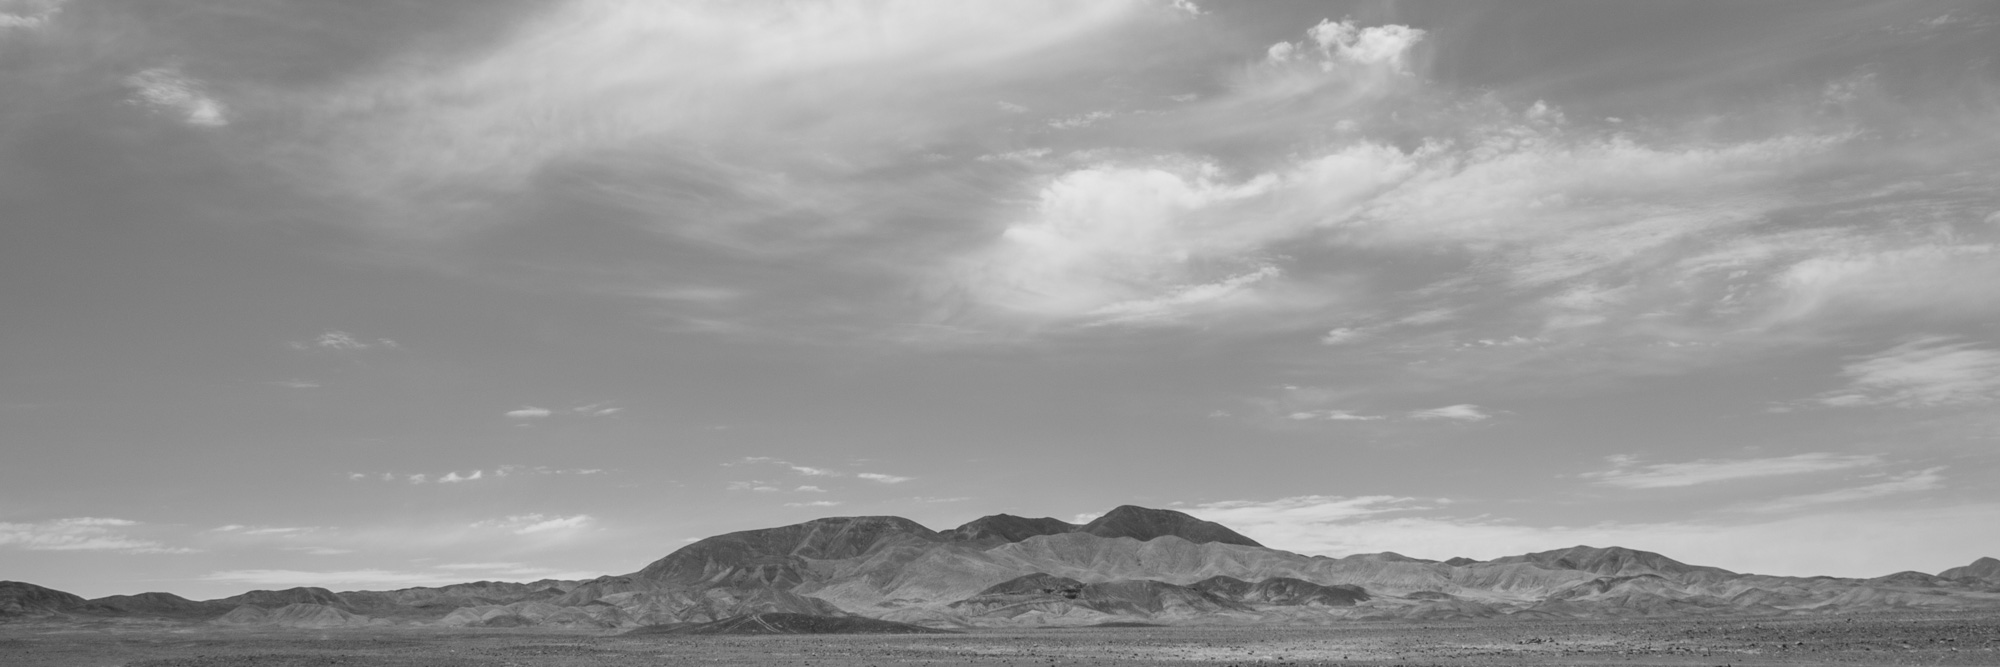 Photograph: Mountains in the Desert